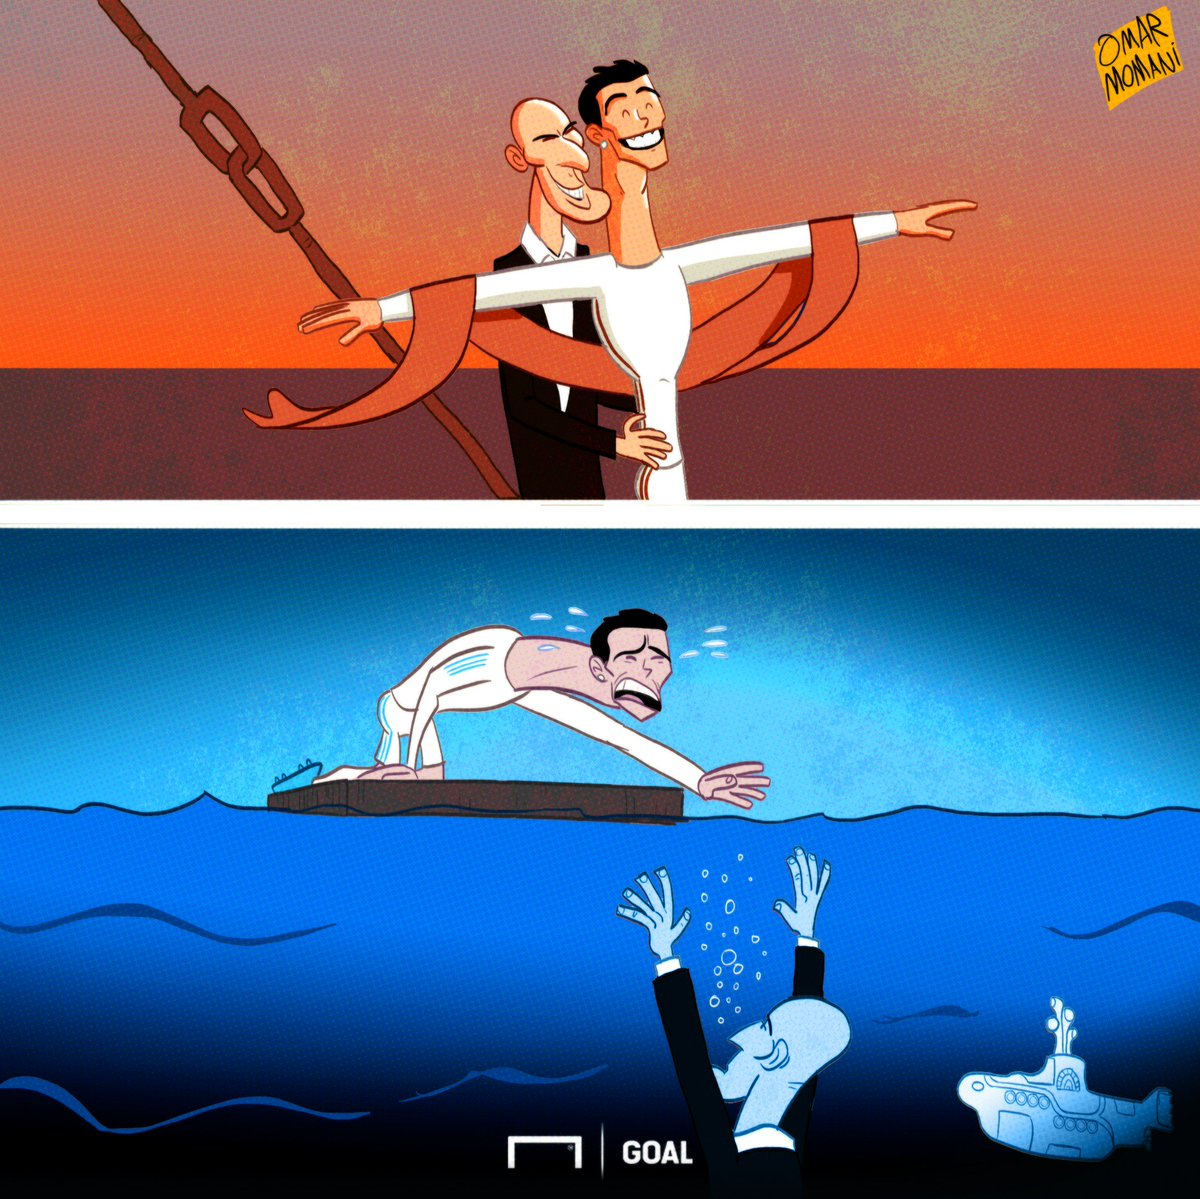 RT @goal: Villarreal's Yellow Submarine has sunk Real Madrid!  Cartoon by @omomani https://t.co/yV1EhtUZ7L